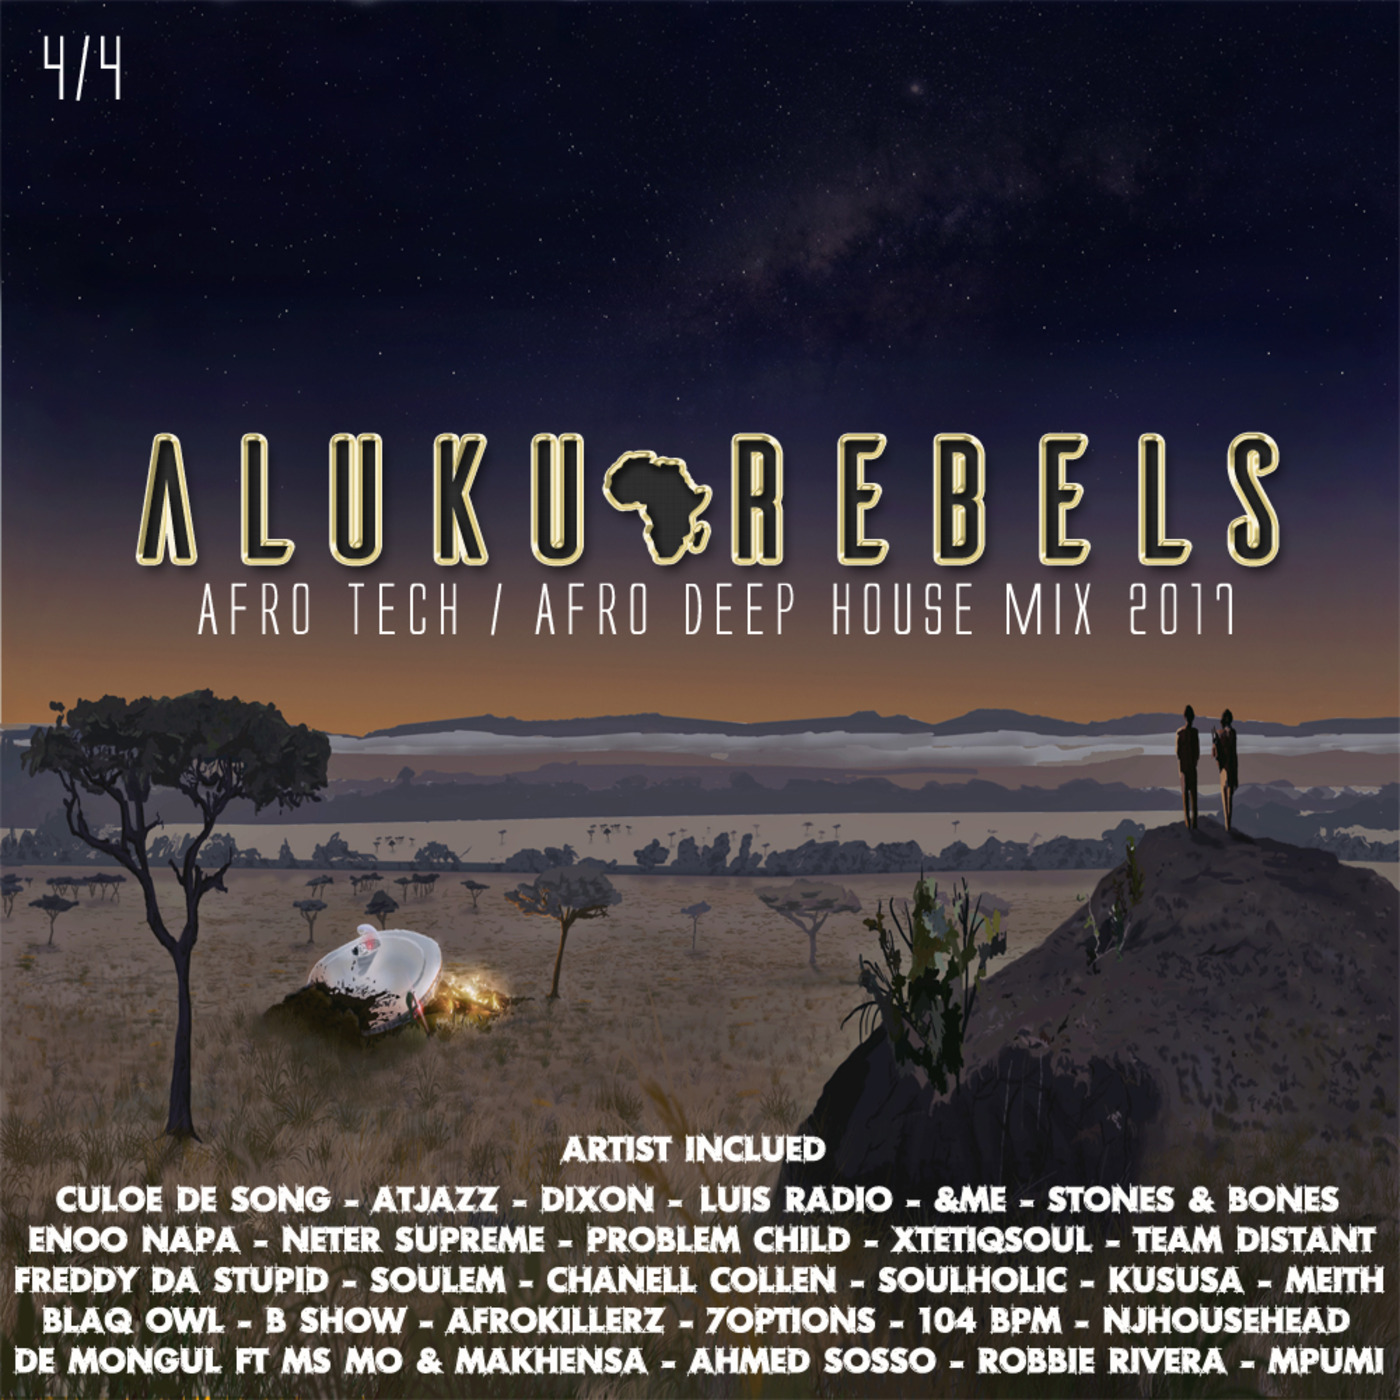 The Crash On Kwazulu Land By Aluku Rebels (Afro Tech/Afro Deep House